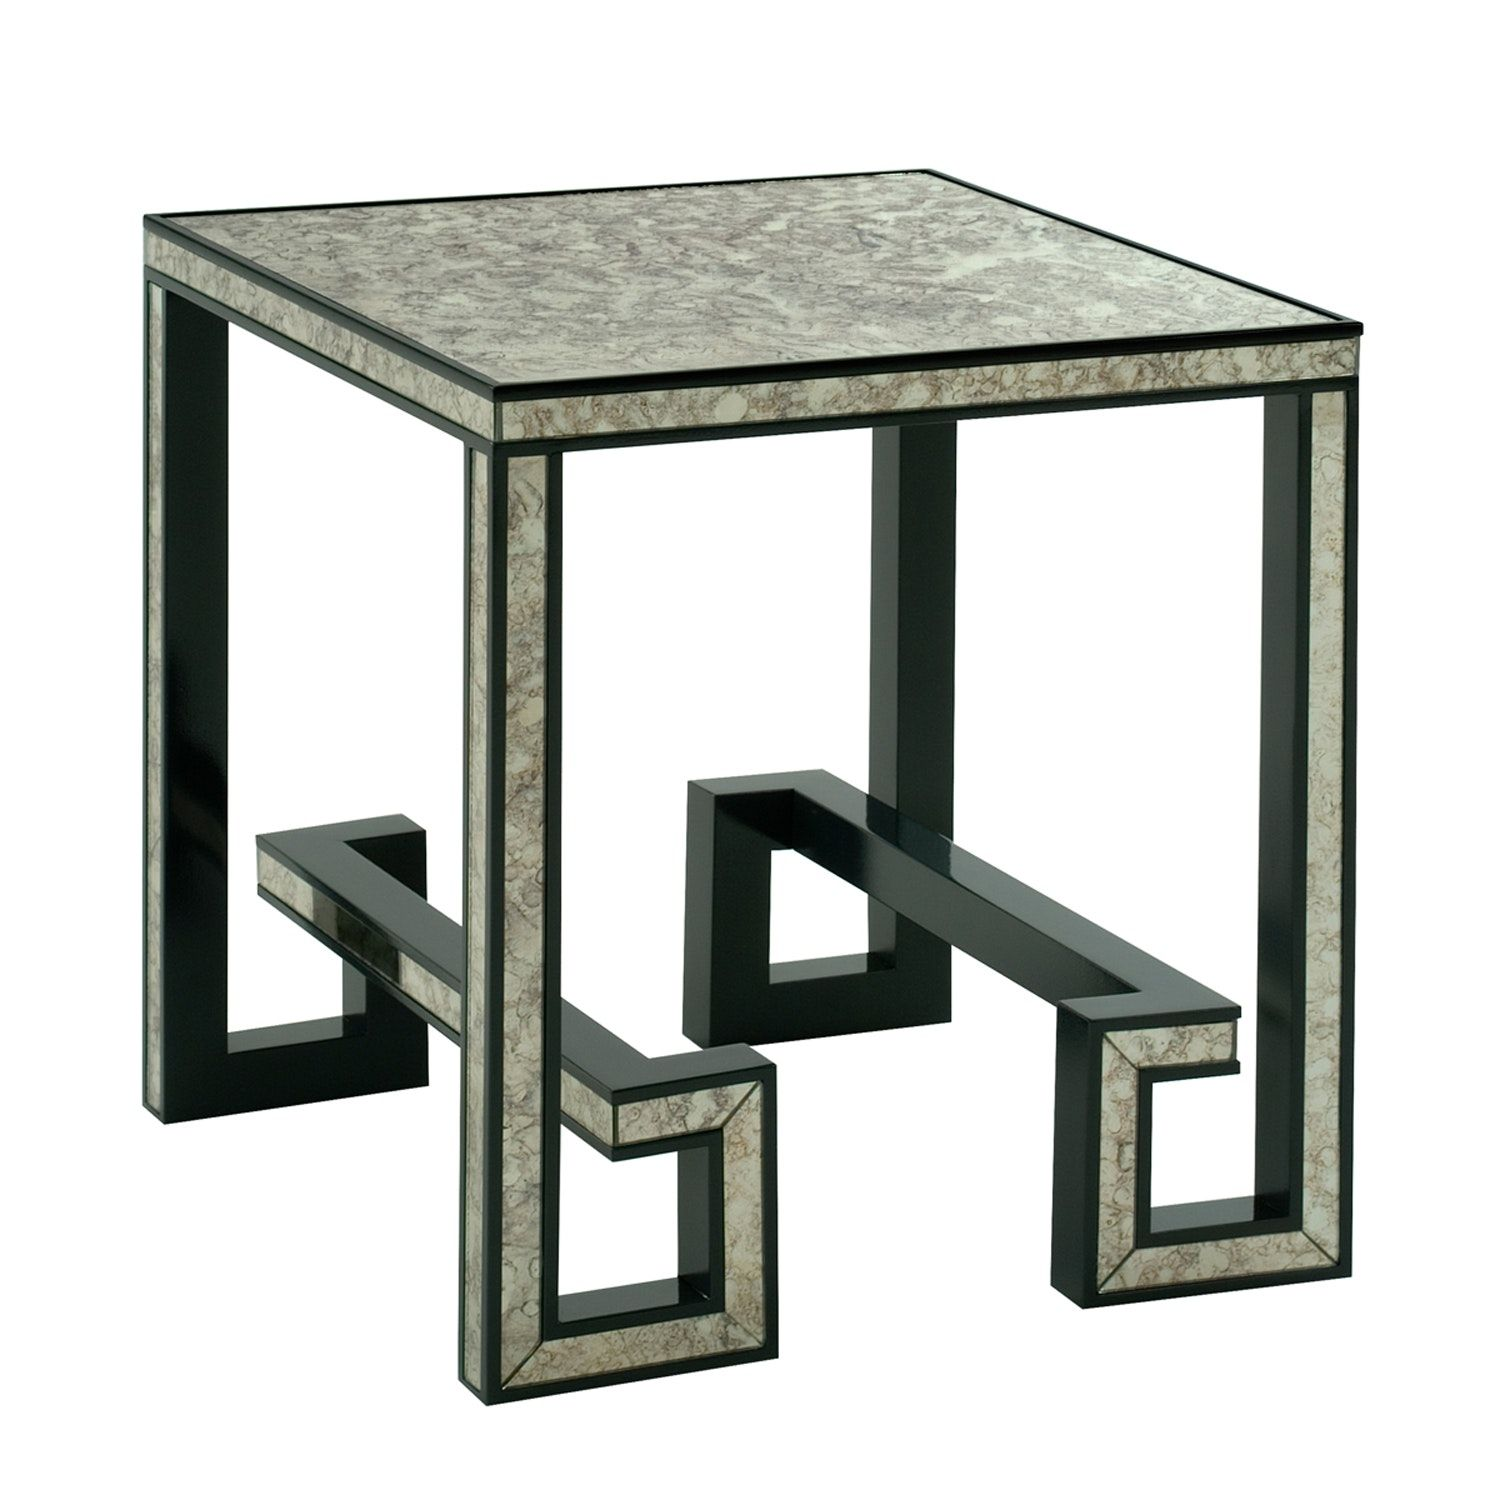 Buy Greek Key Mirrored Side Table by Lamshop Made to Order